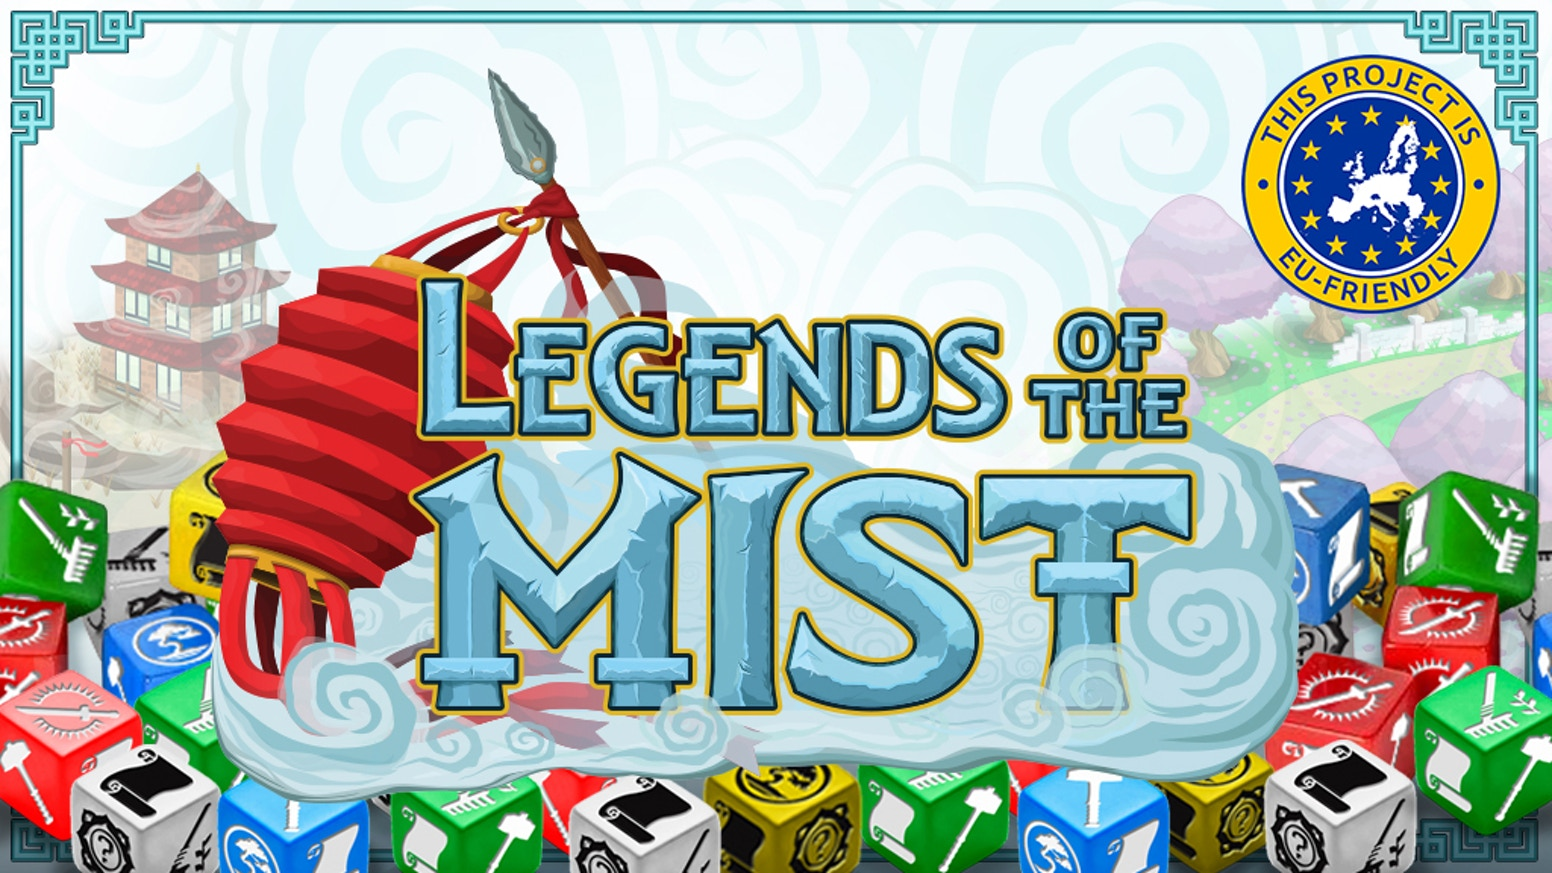 Enter the mists to settle a new empire. Using over 40 Custom Dice, roll them, secretly assign them to gain favor and become a LEGEND!